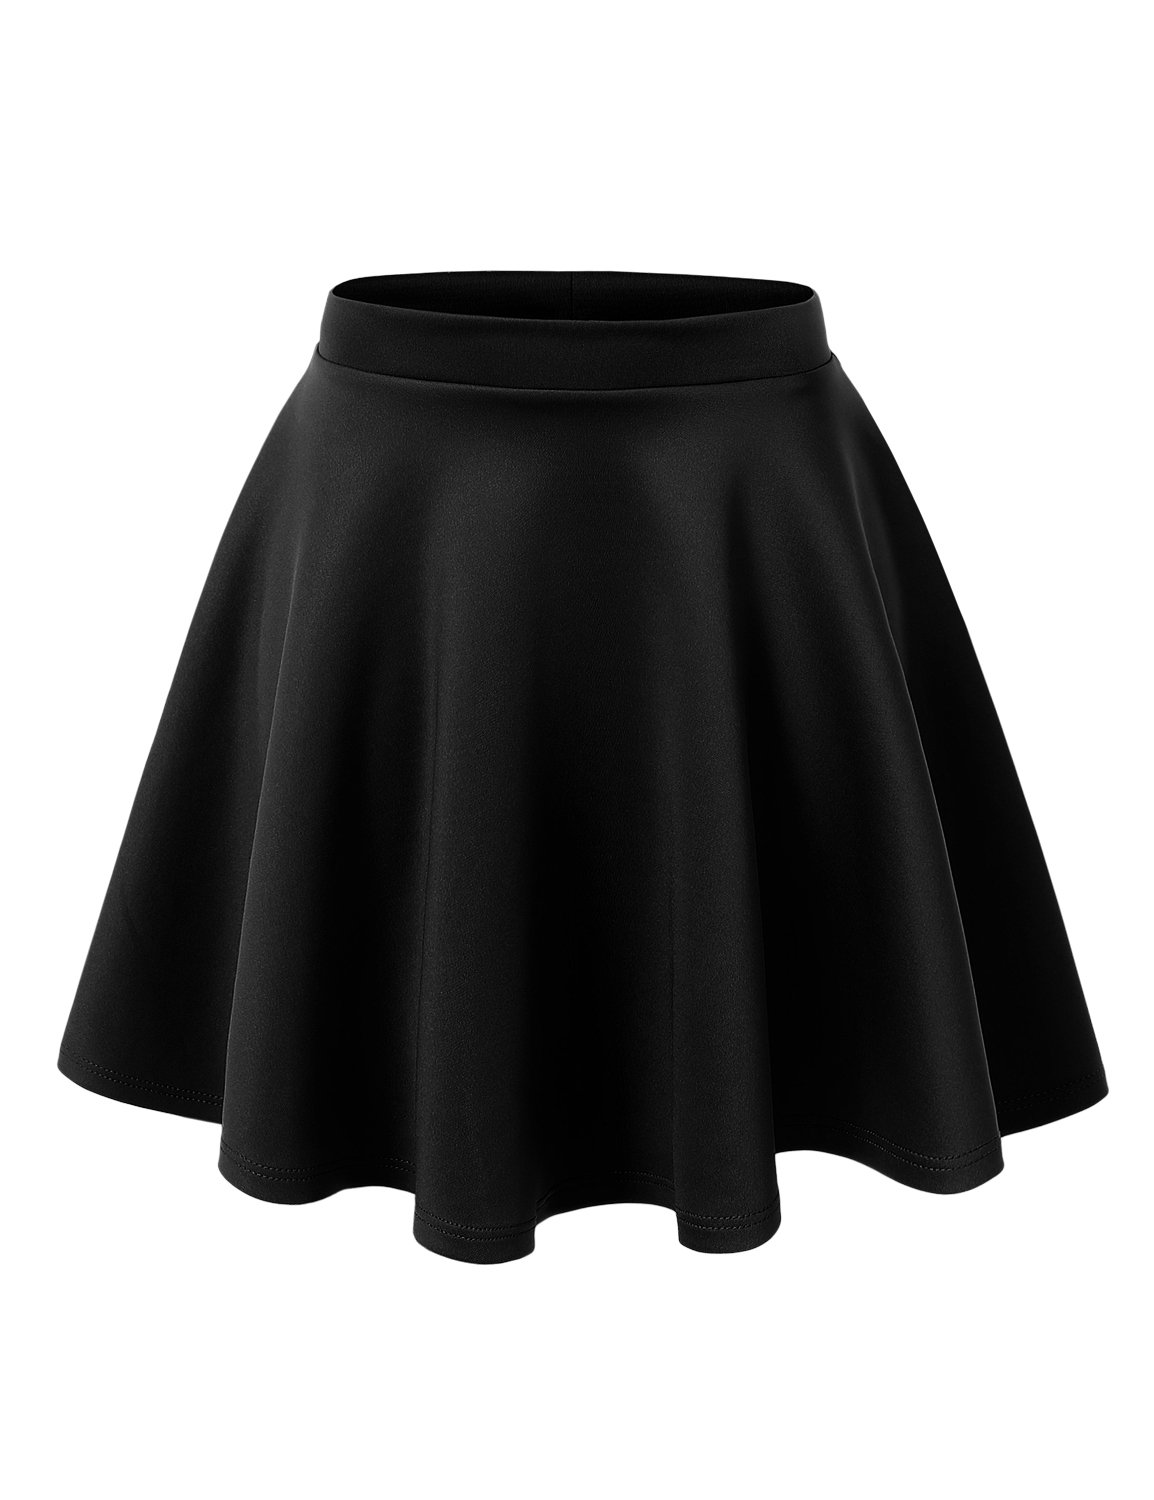 UU Fashion UUWB1034 Womens Plus Size Basic Versatile Stretchy Flared Skater Skirt 3X Black